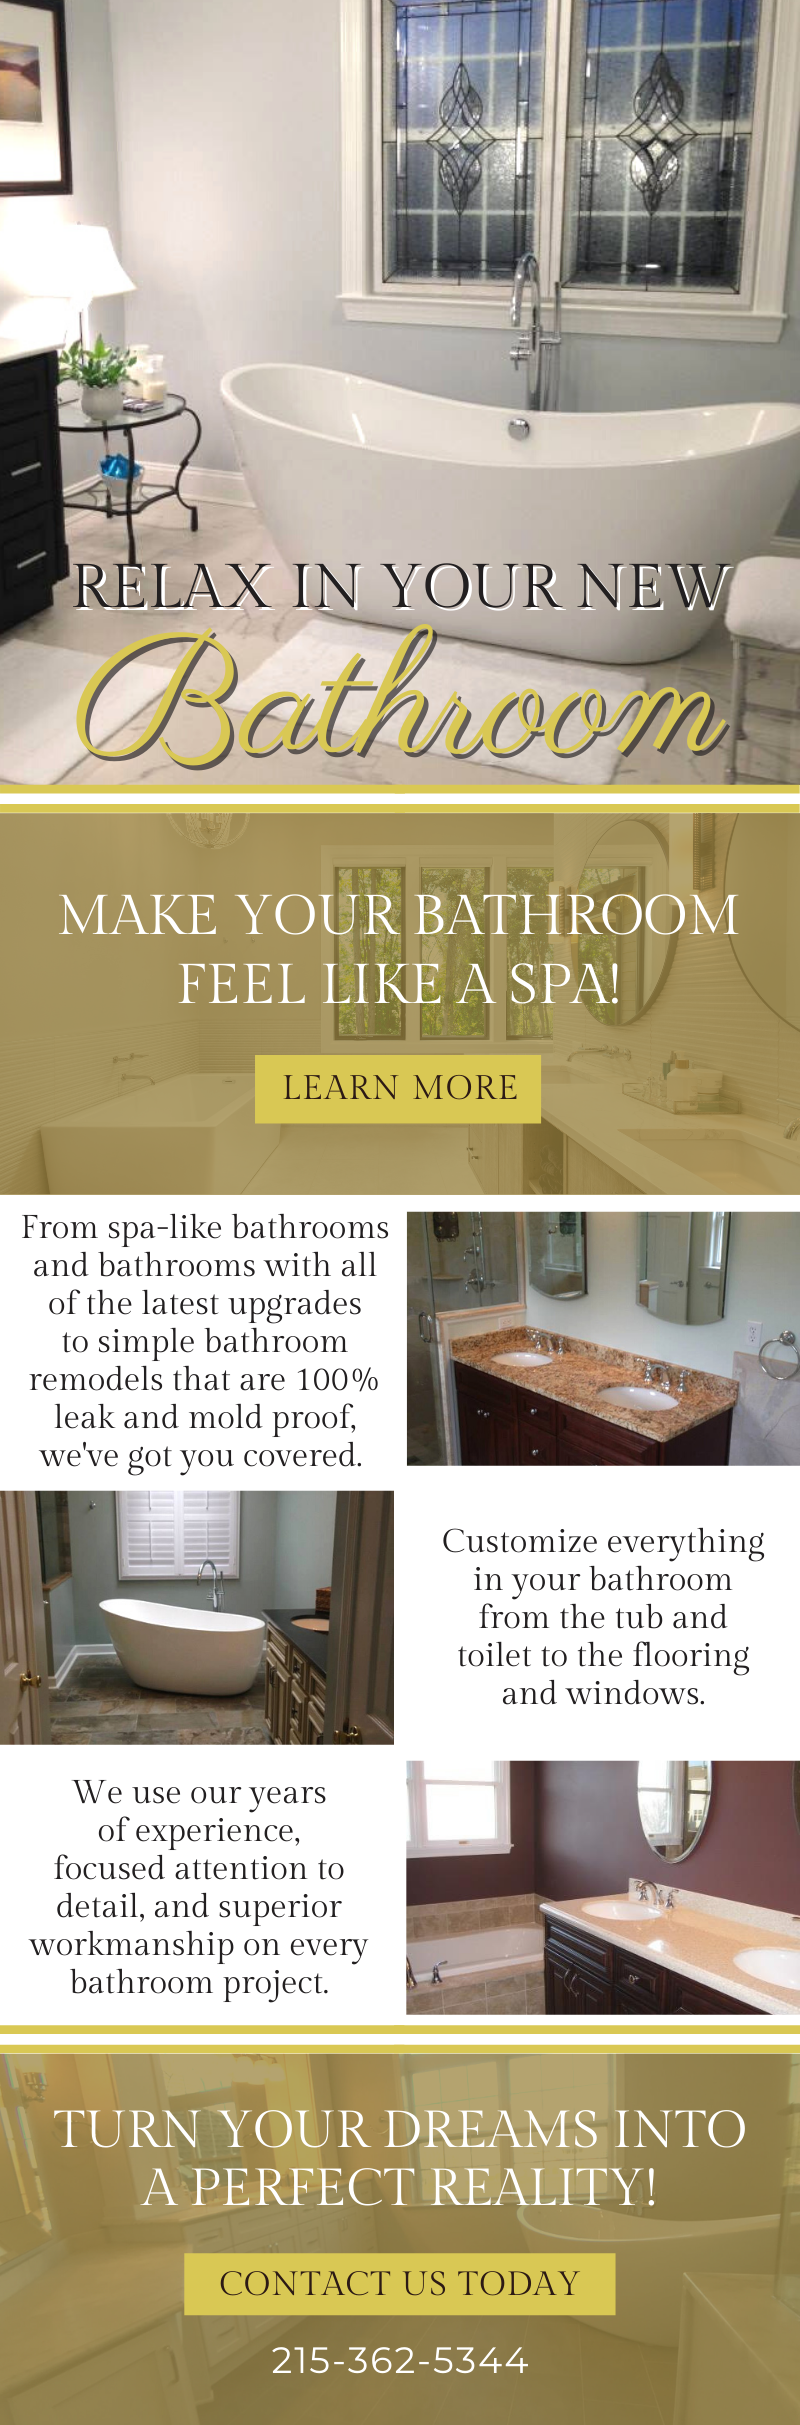 Relax In Your New Bathroom! 3